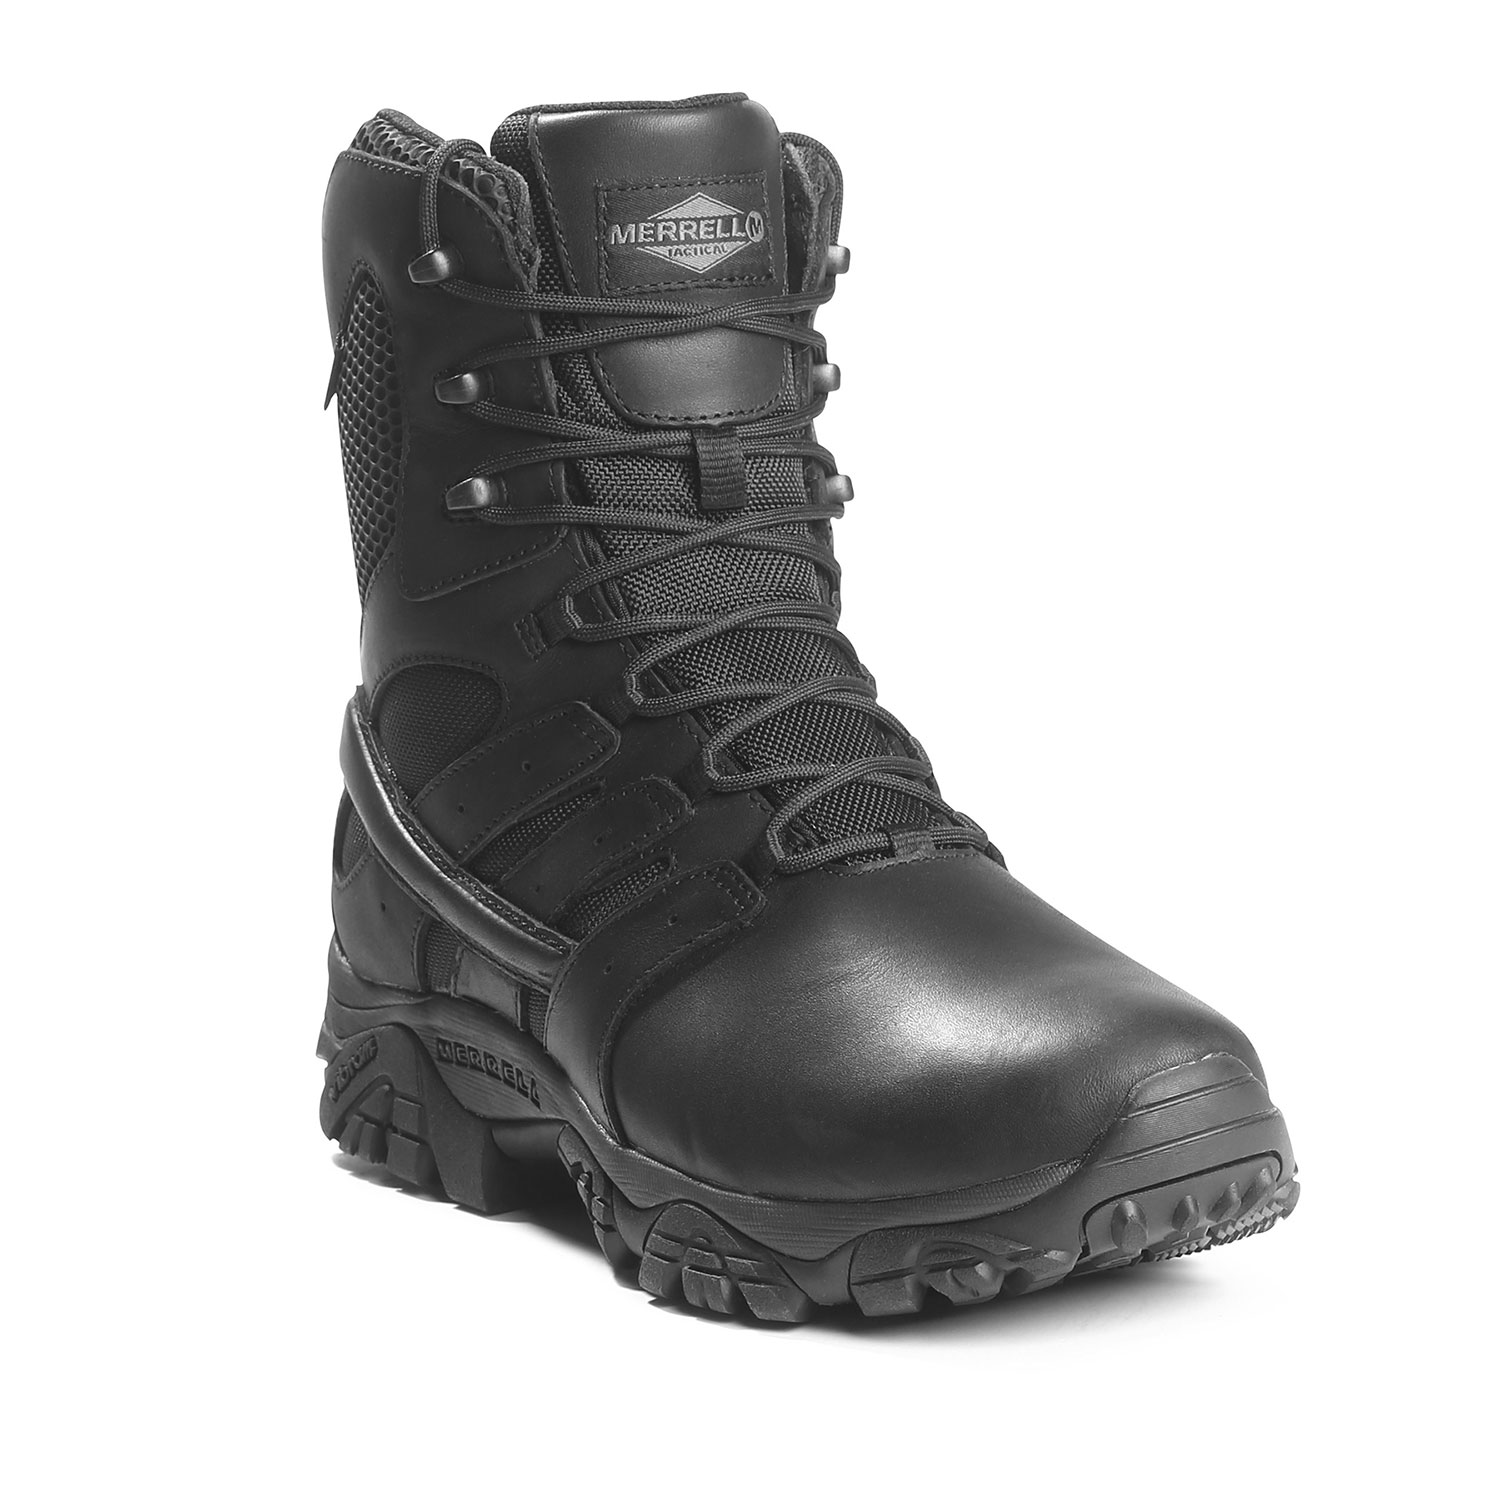 Merrell Womens Moab 2 Tactical Response 8inch Boots